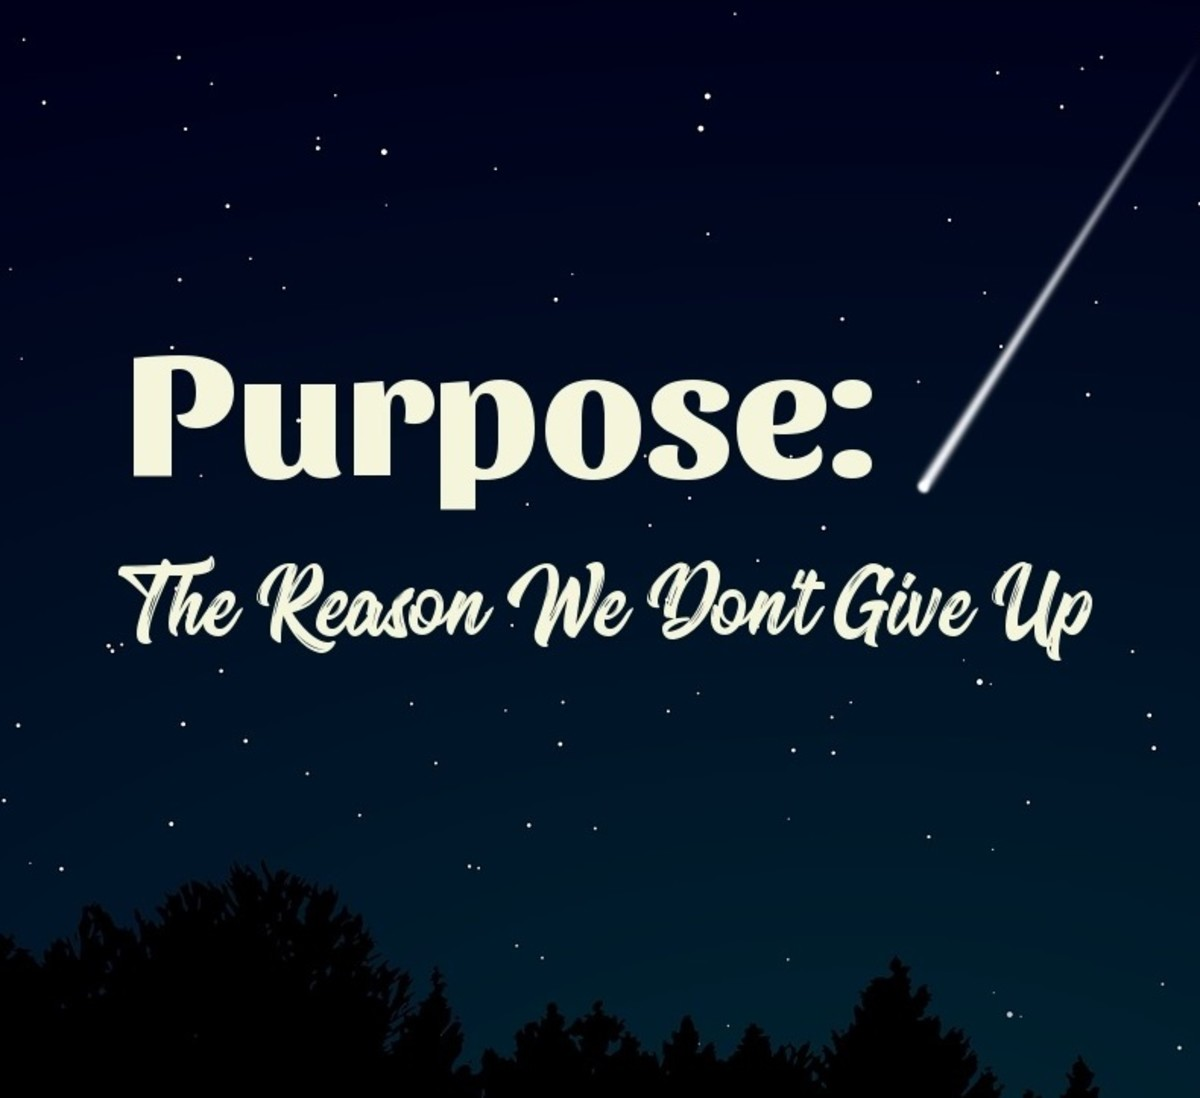 Purpose: The Reason We Don't Give Up